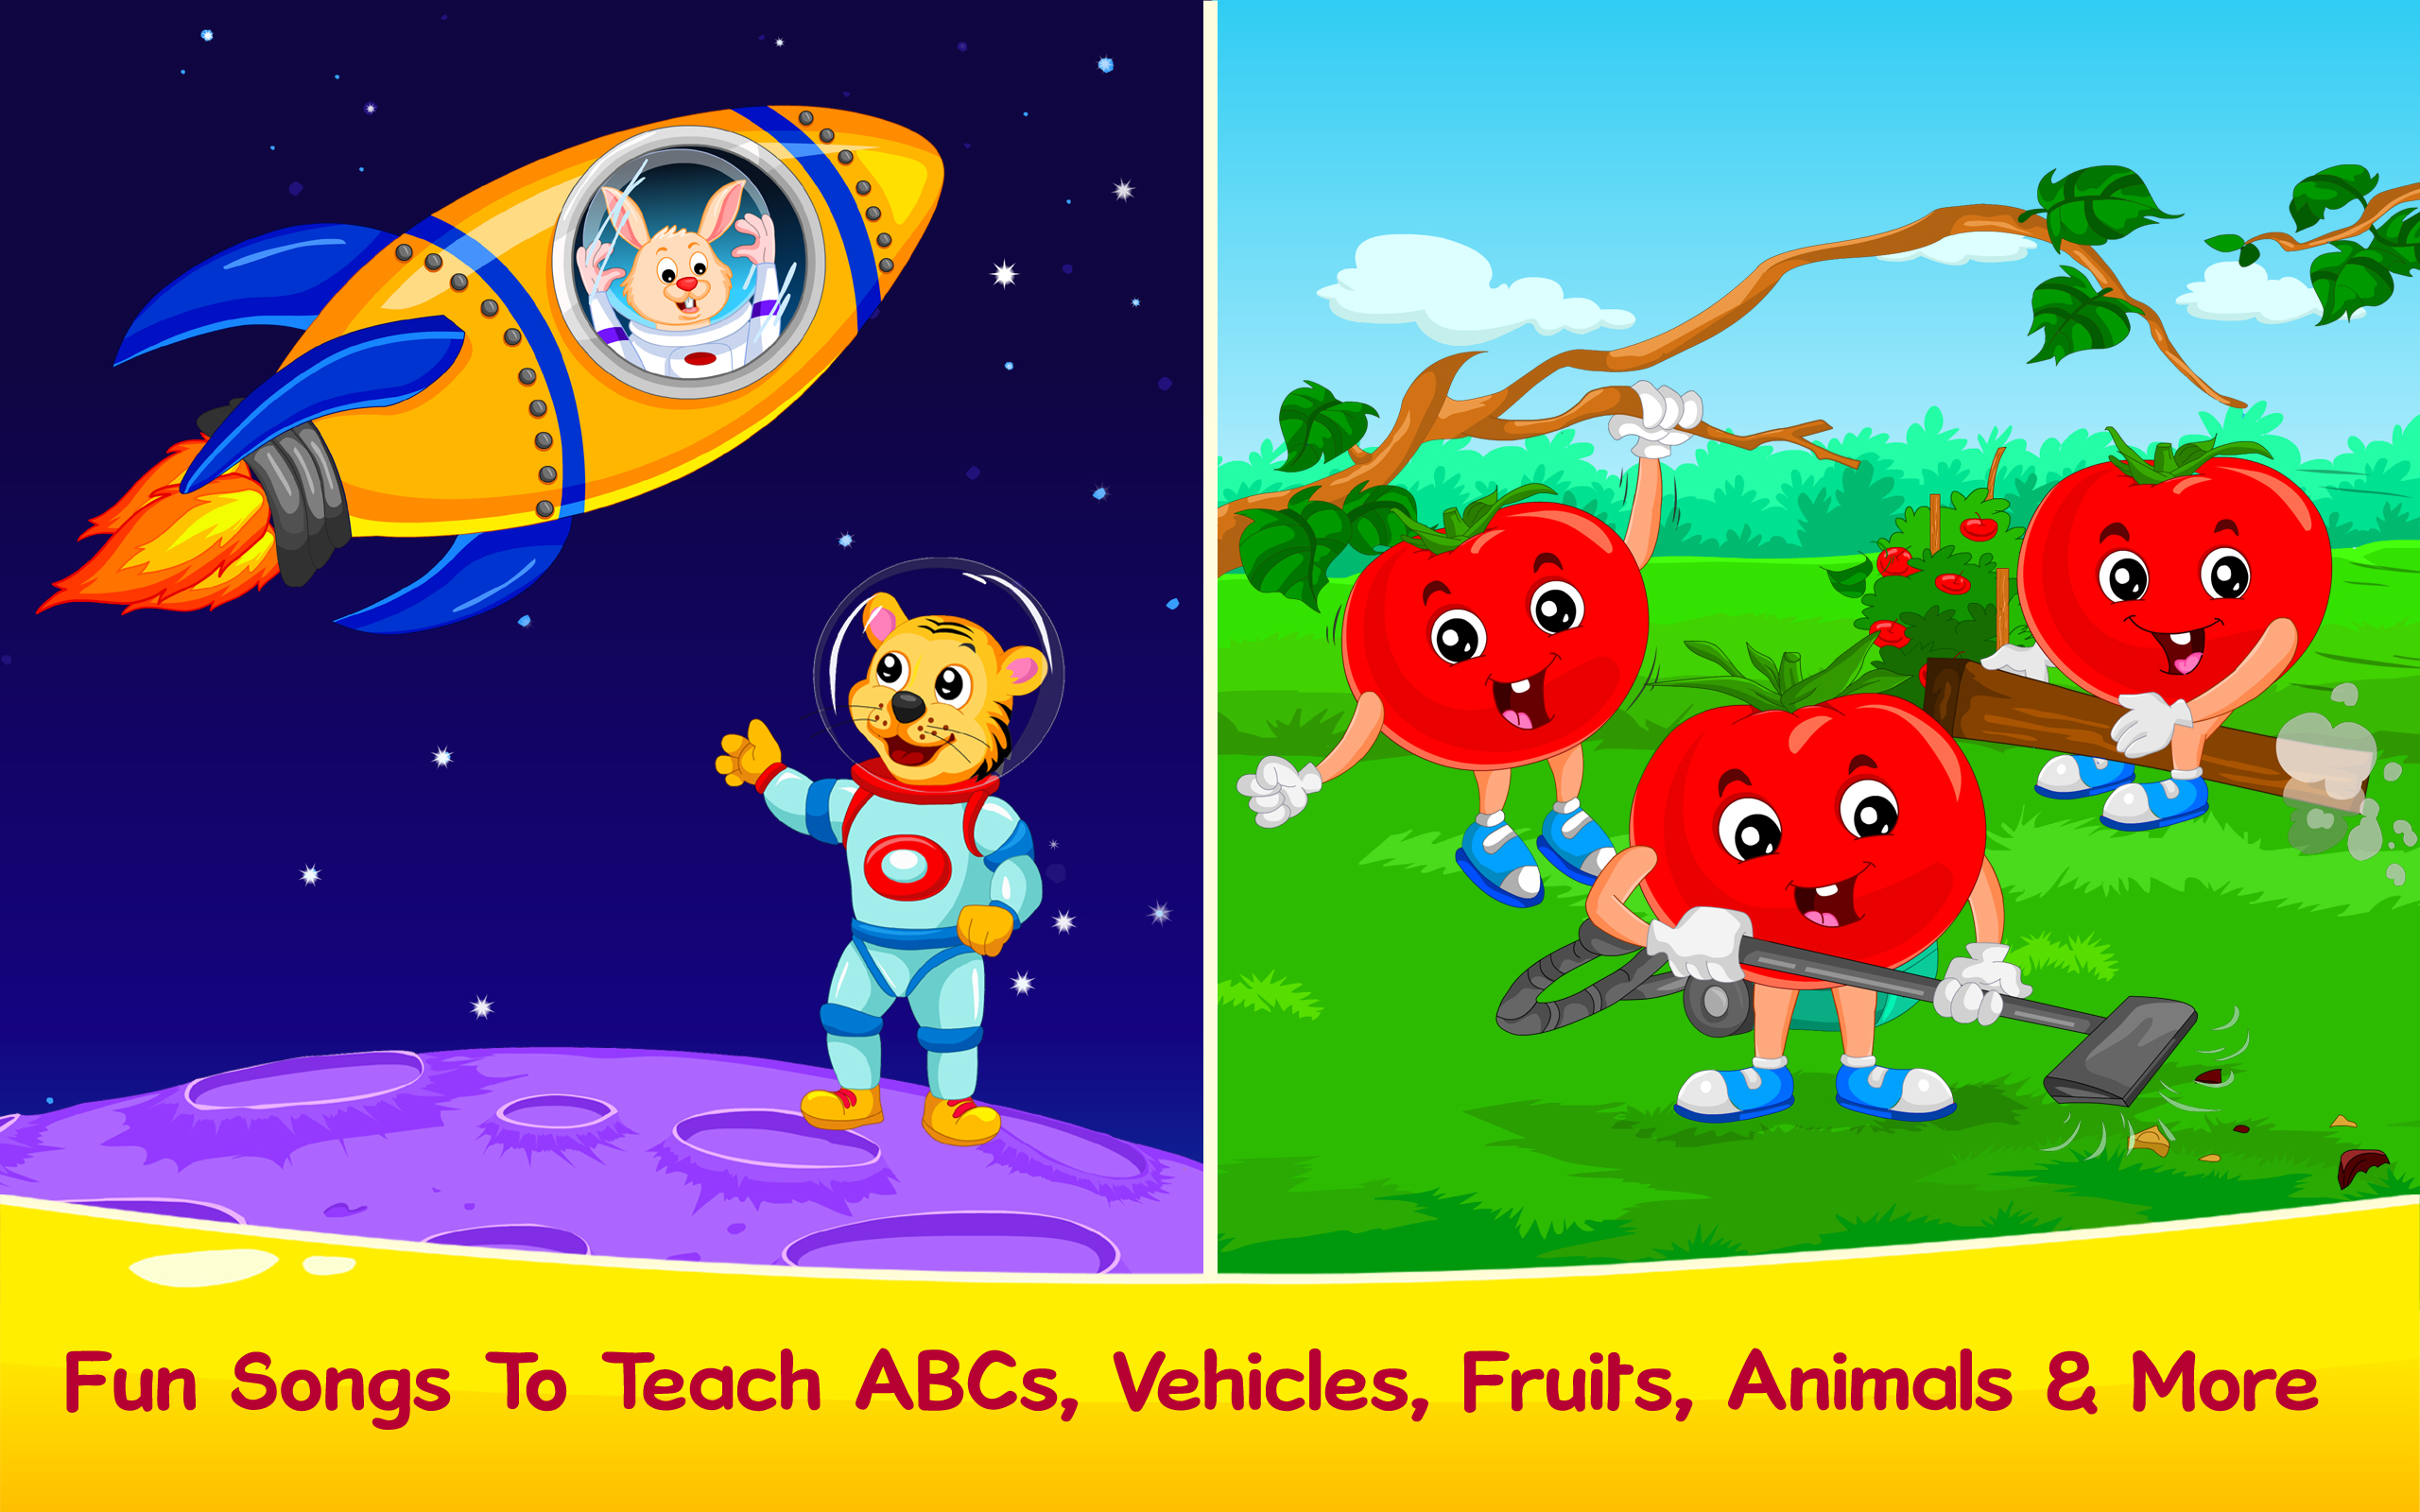 Amazon.com: Kids Learning Games, Nursery Rhymes, Children Stories ...